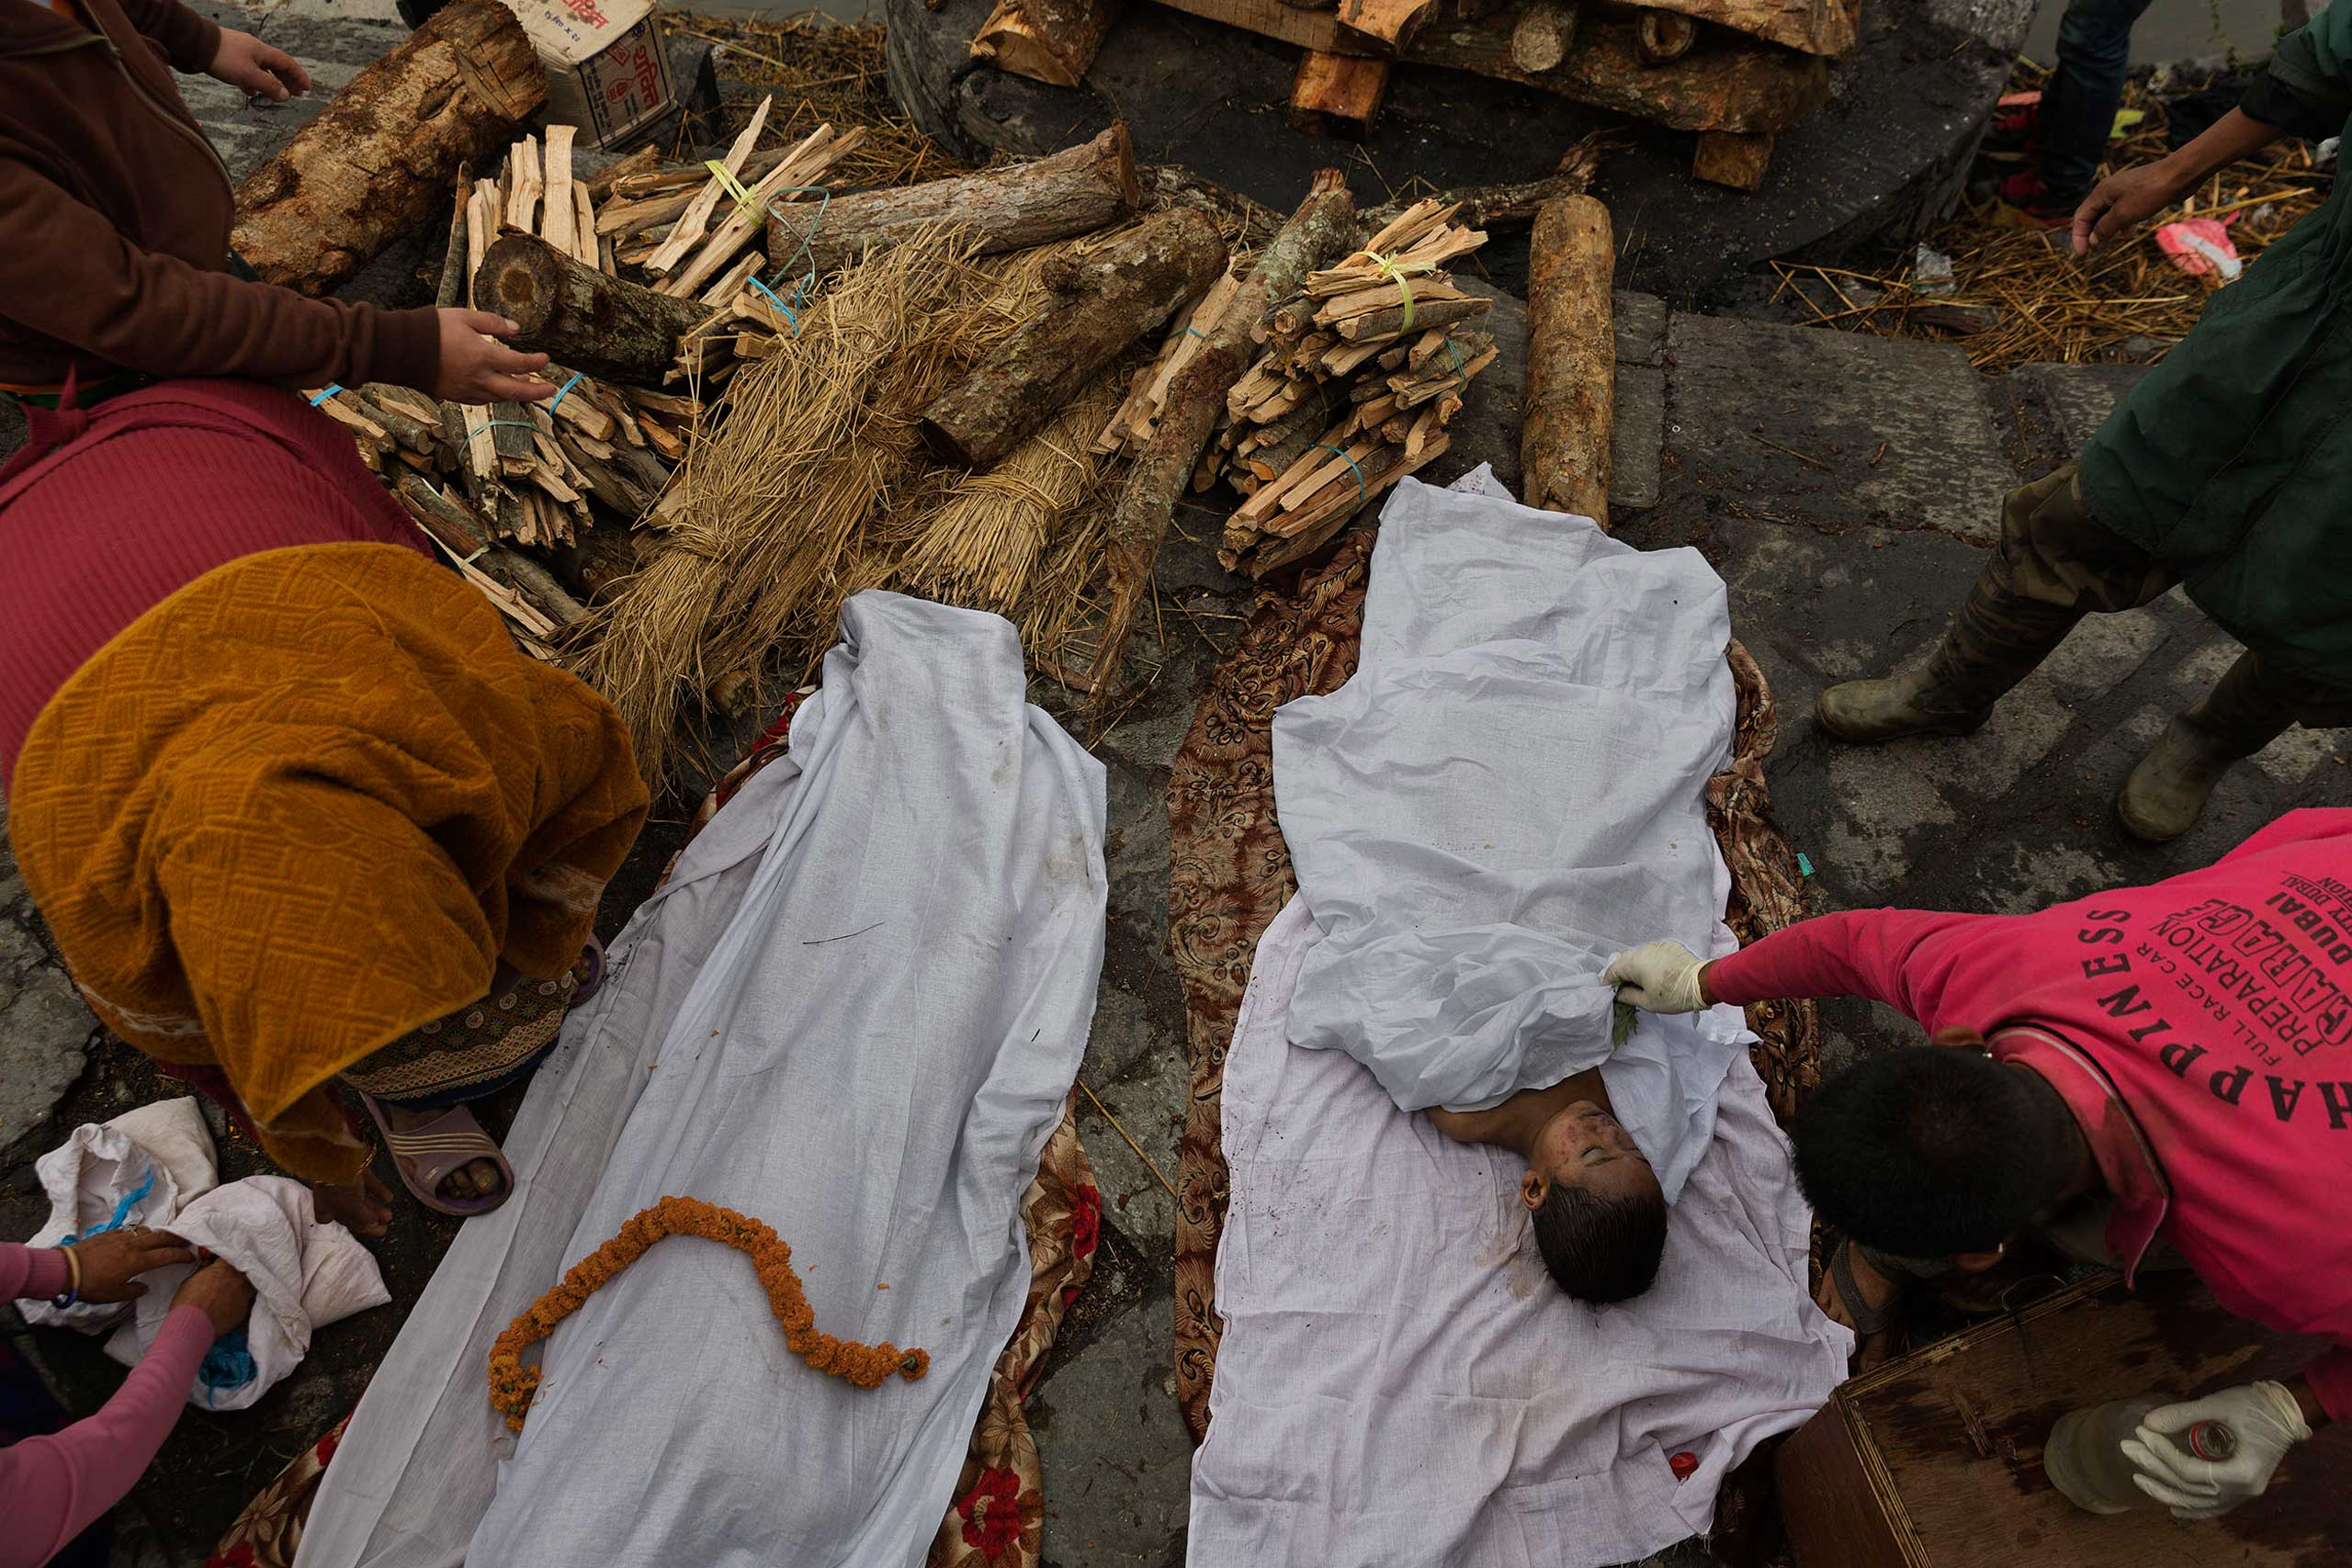 Bodies are prepared for cremation during a Hindu ritual at the Pashupatinath Temple in Kathmandu on April 28, 2015, three days after a 7.8 magnitude earthquake devastated Nepal, killing at least 7,000 people and causing untold damage.